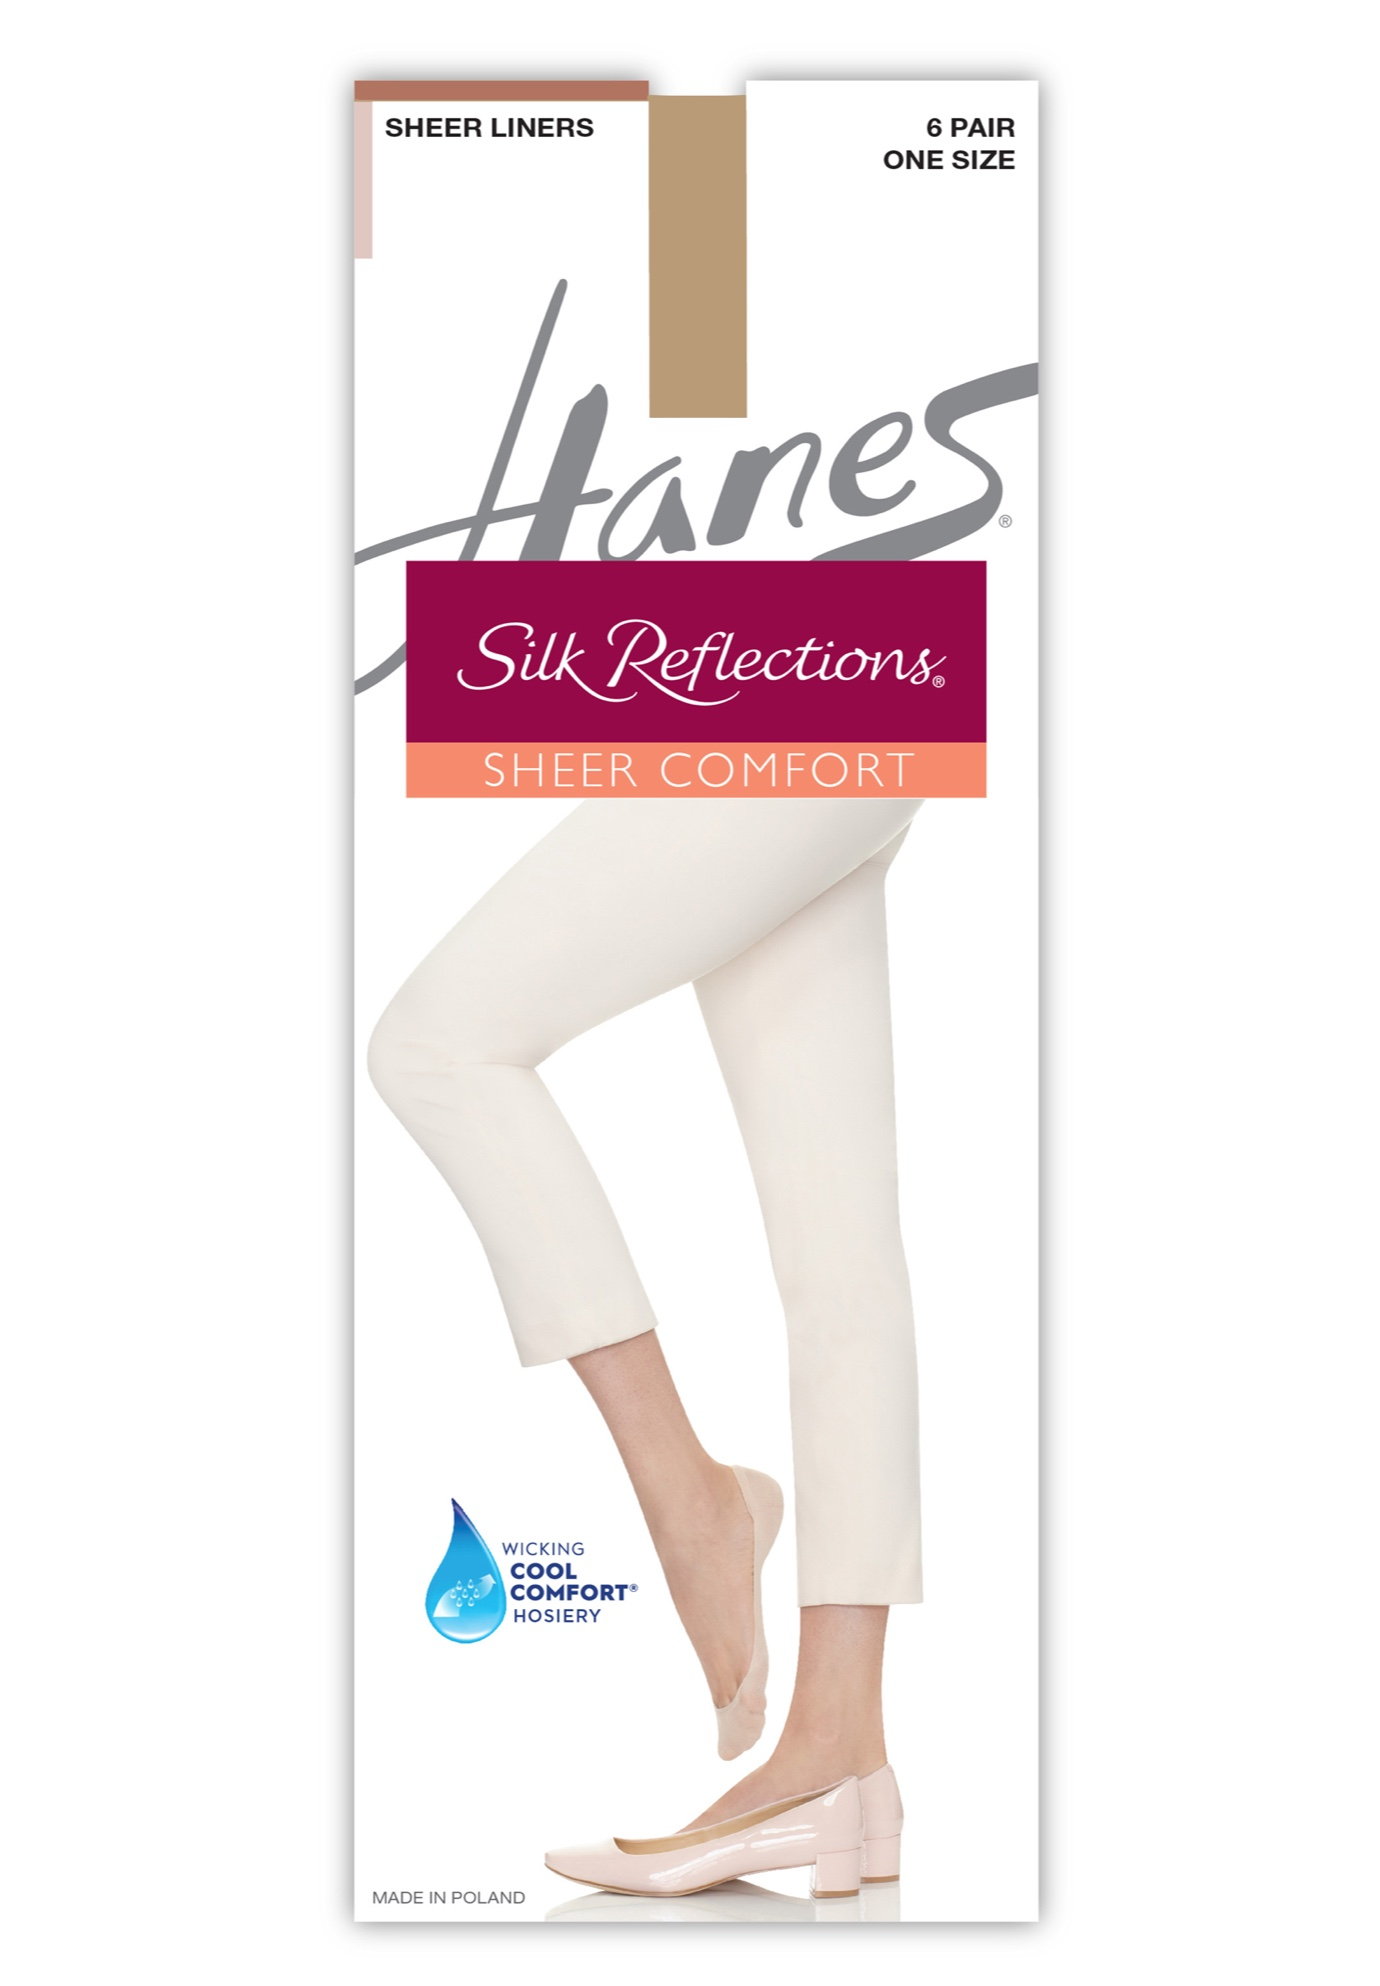 Hanes Silk Reflections Sheer Liners 6-Pack,